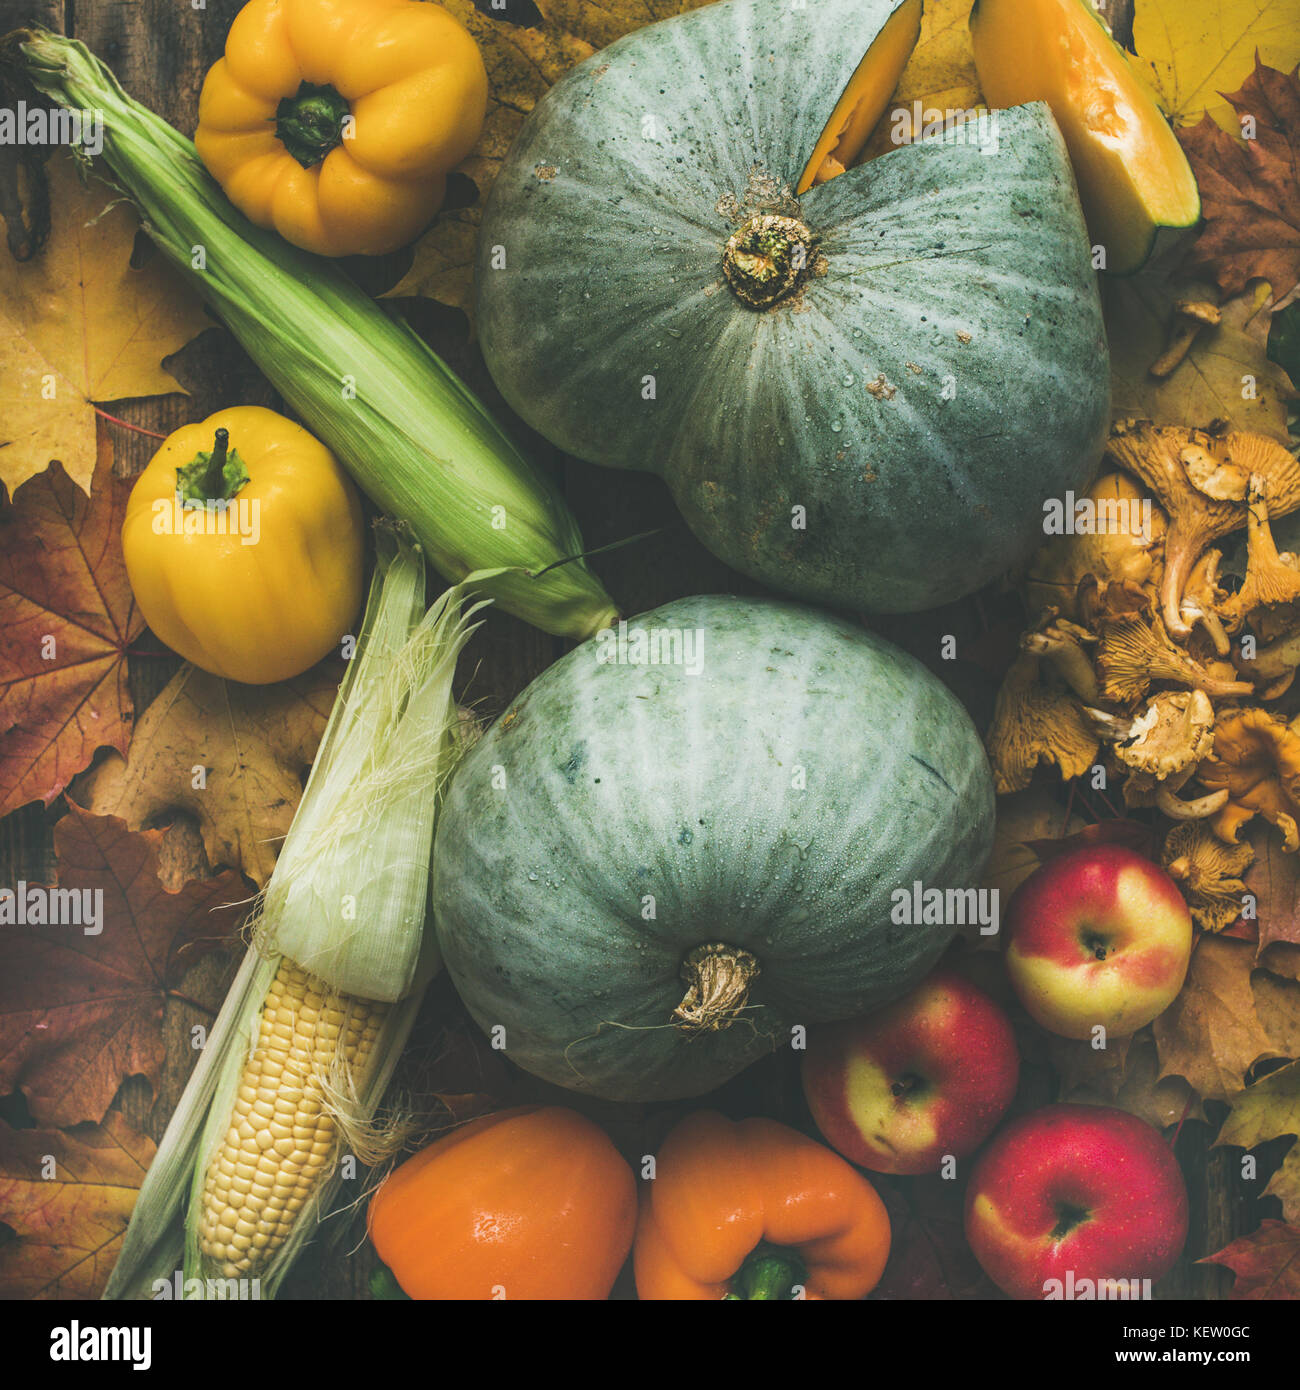 Fall colorful vegetables assortment over wooden table background, square crop - Stock Image